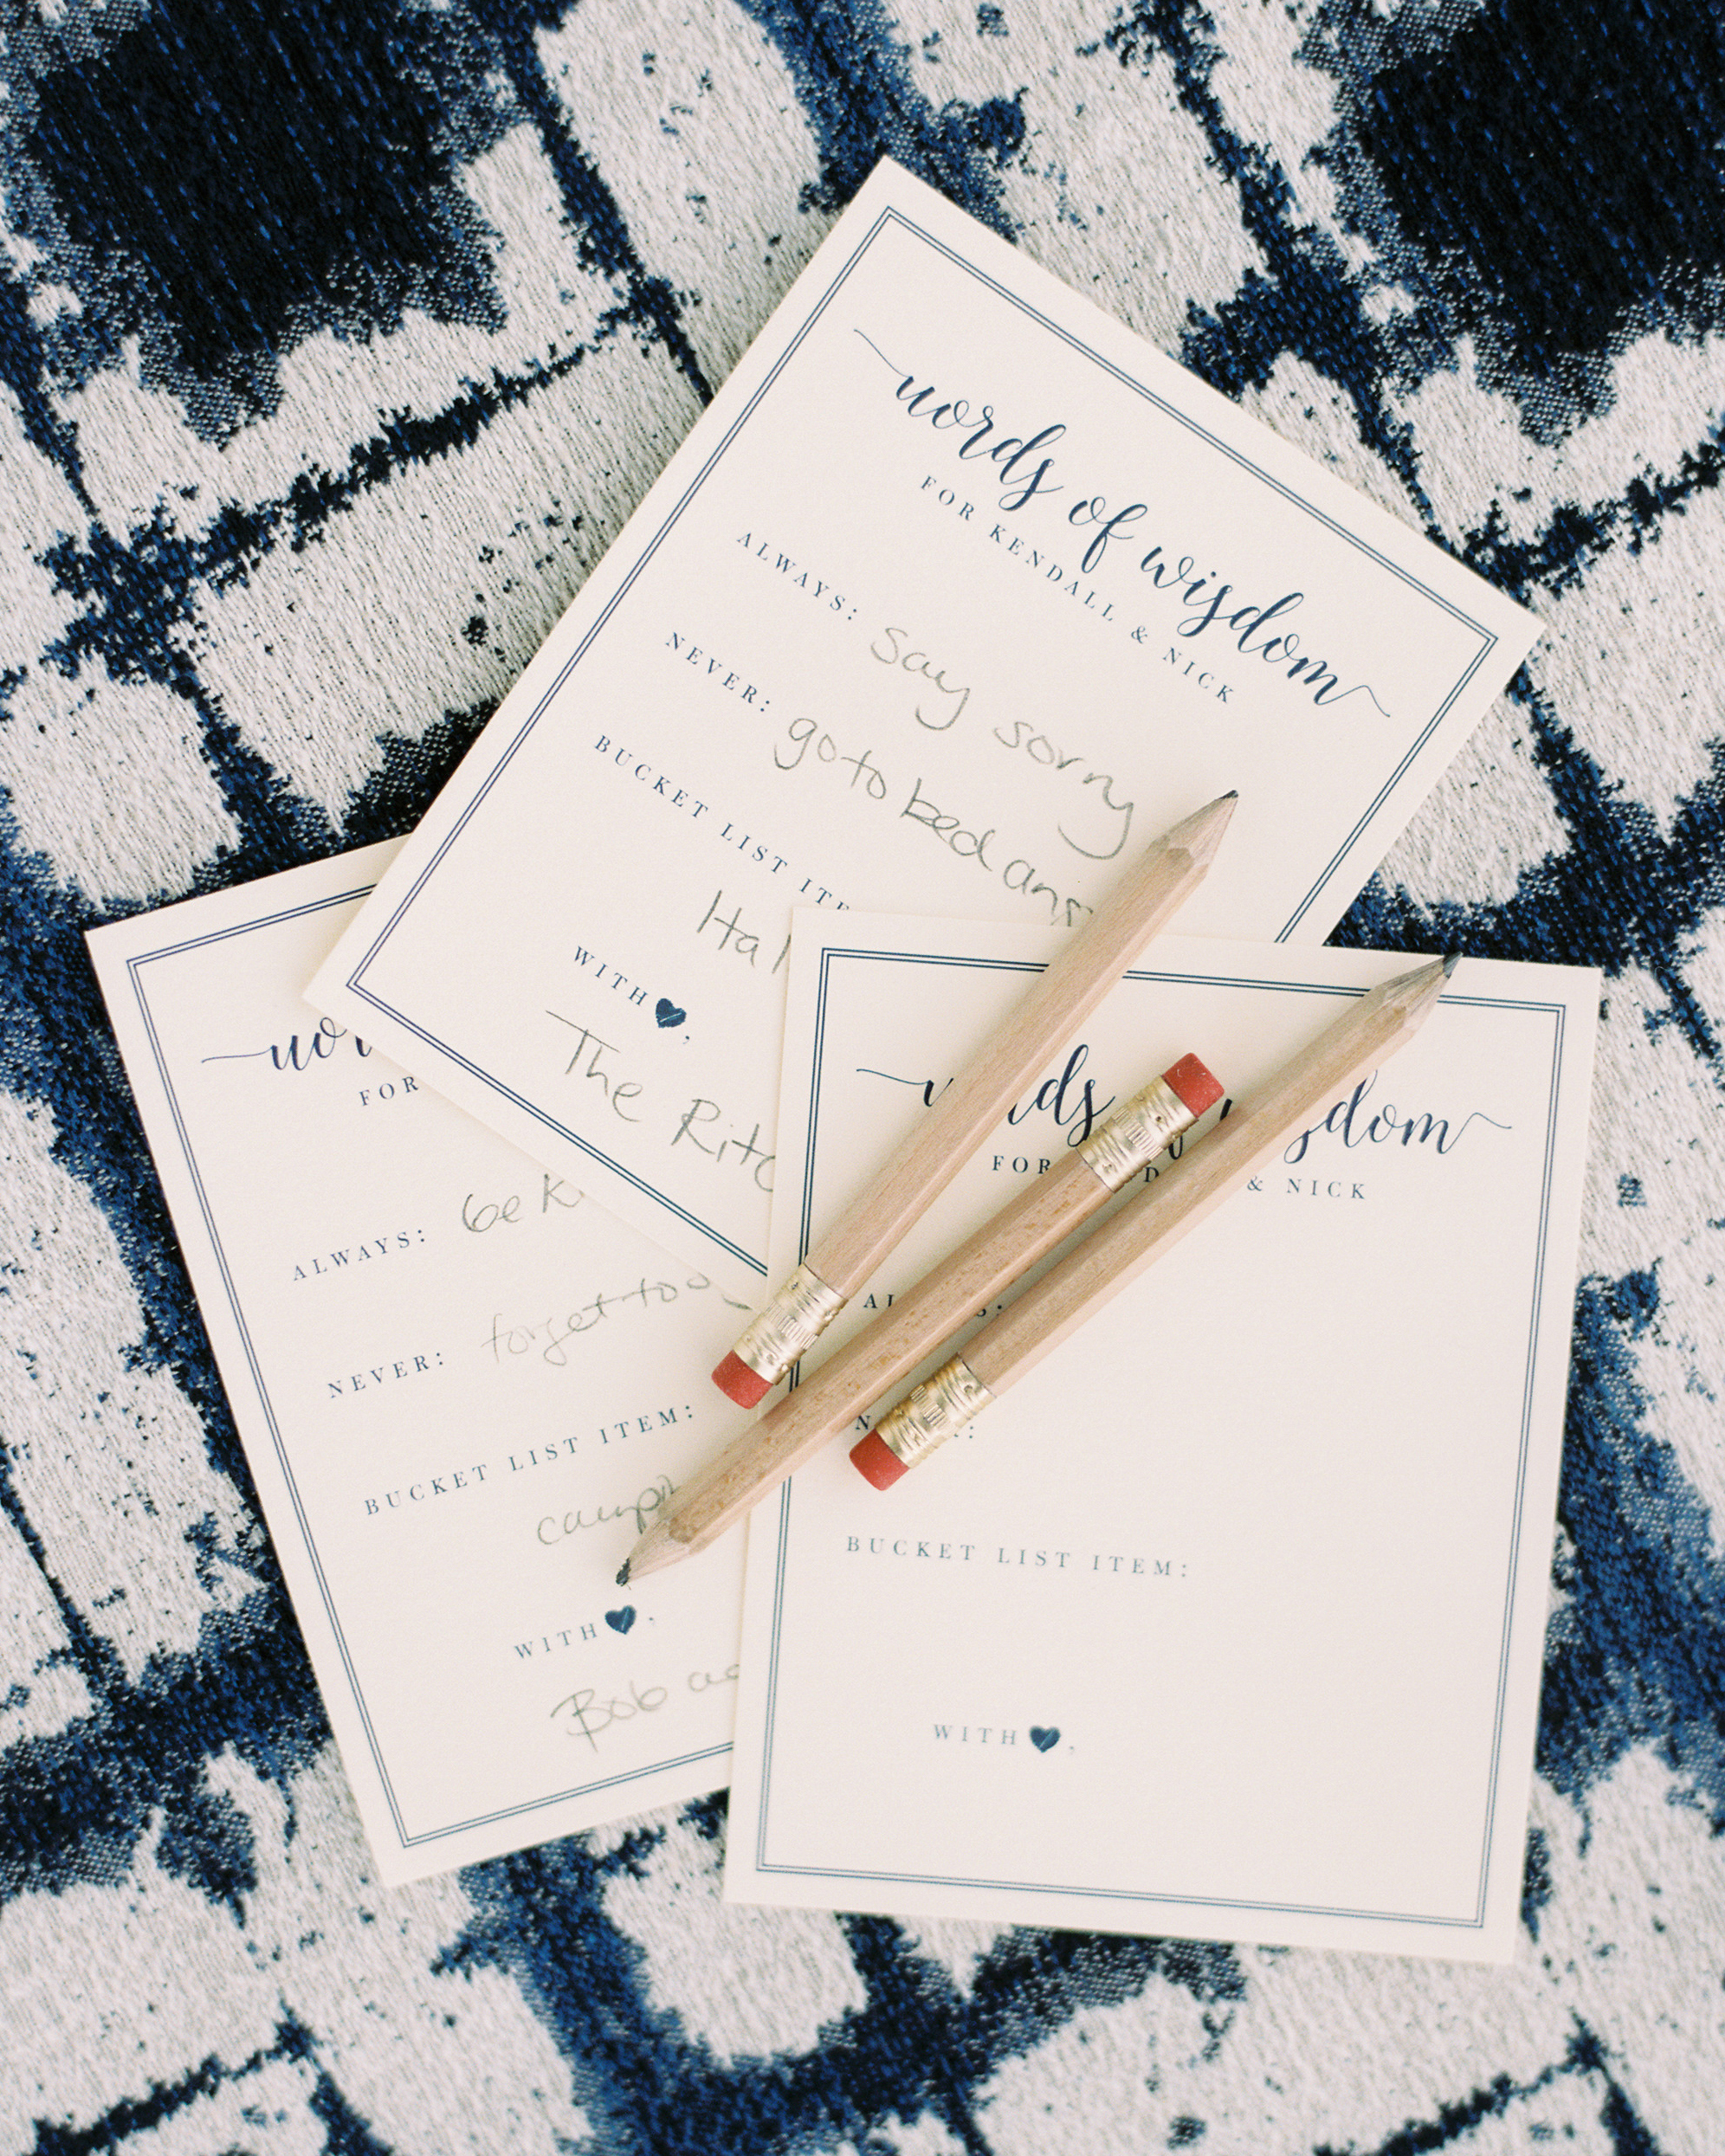 kendall nick wedding advice cards